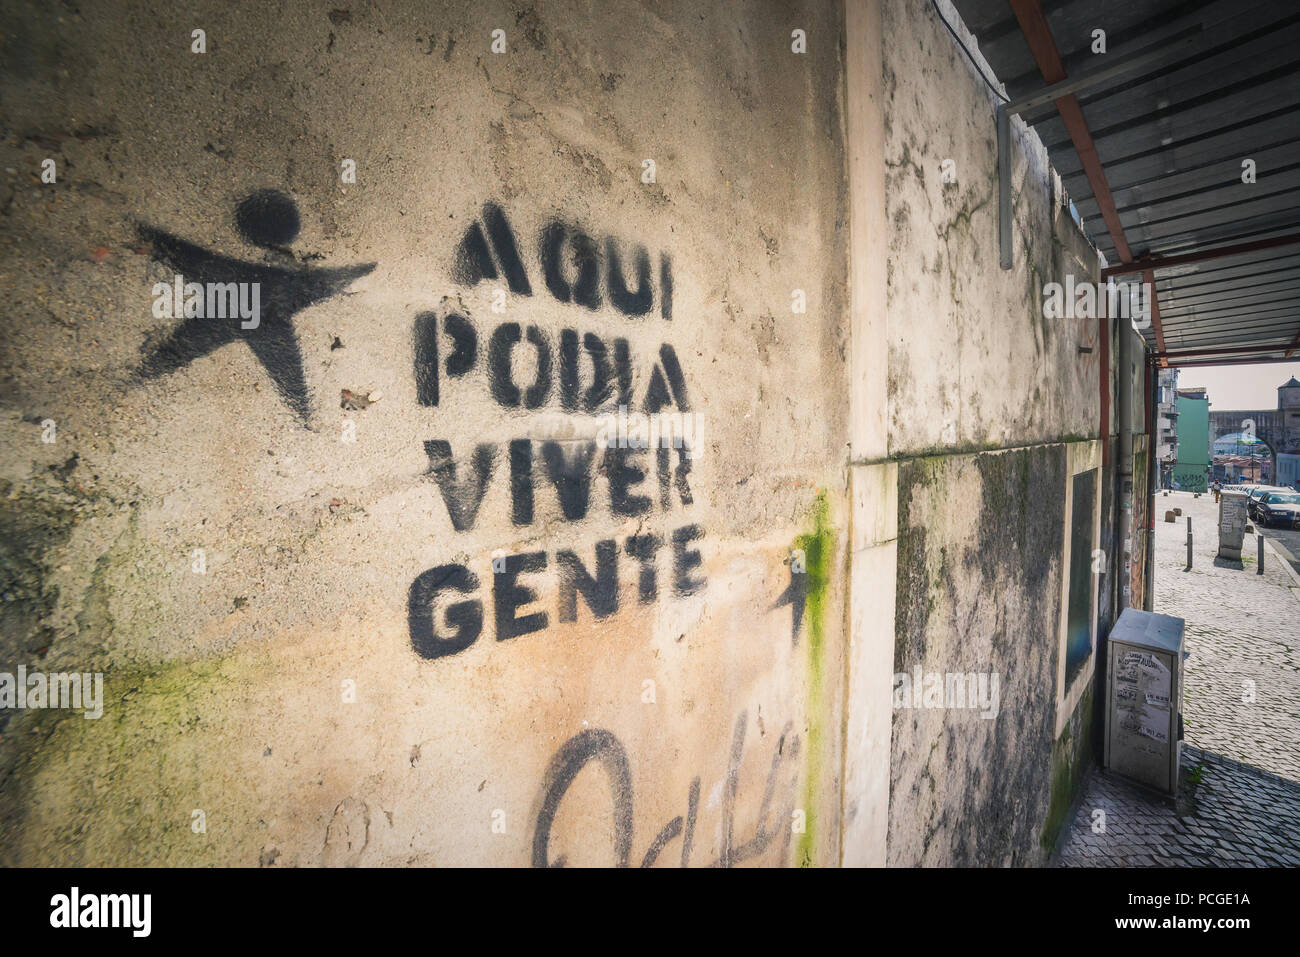 Lisbon. Artist graffity against gentrification saying 'People could live here.' - Stock Image